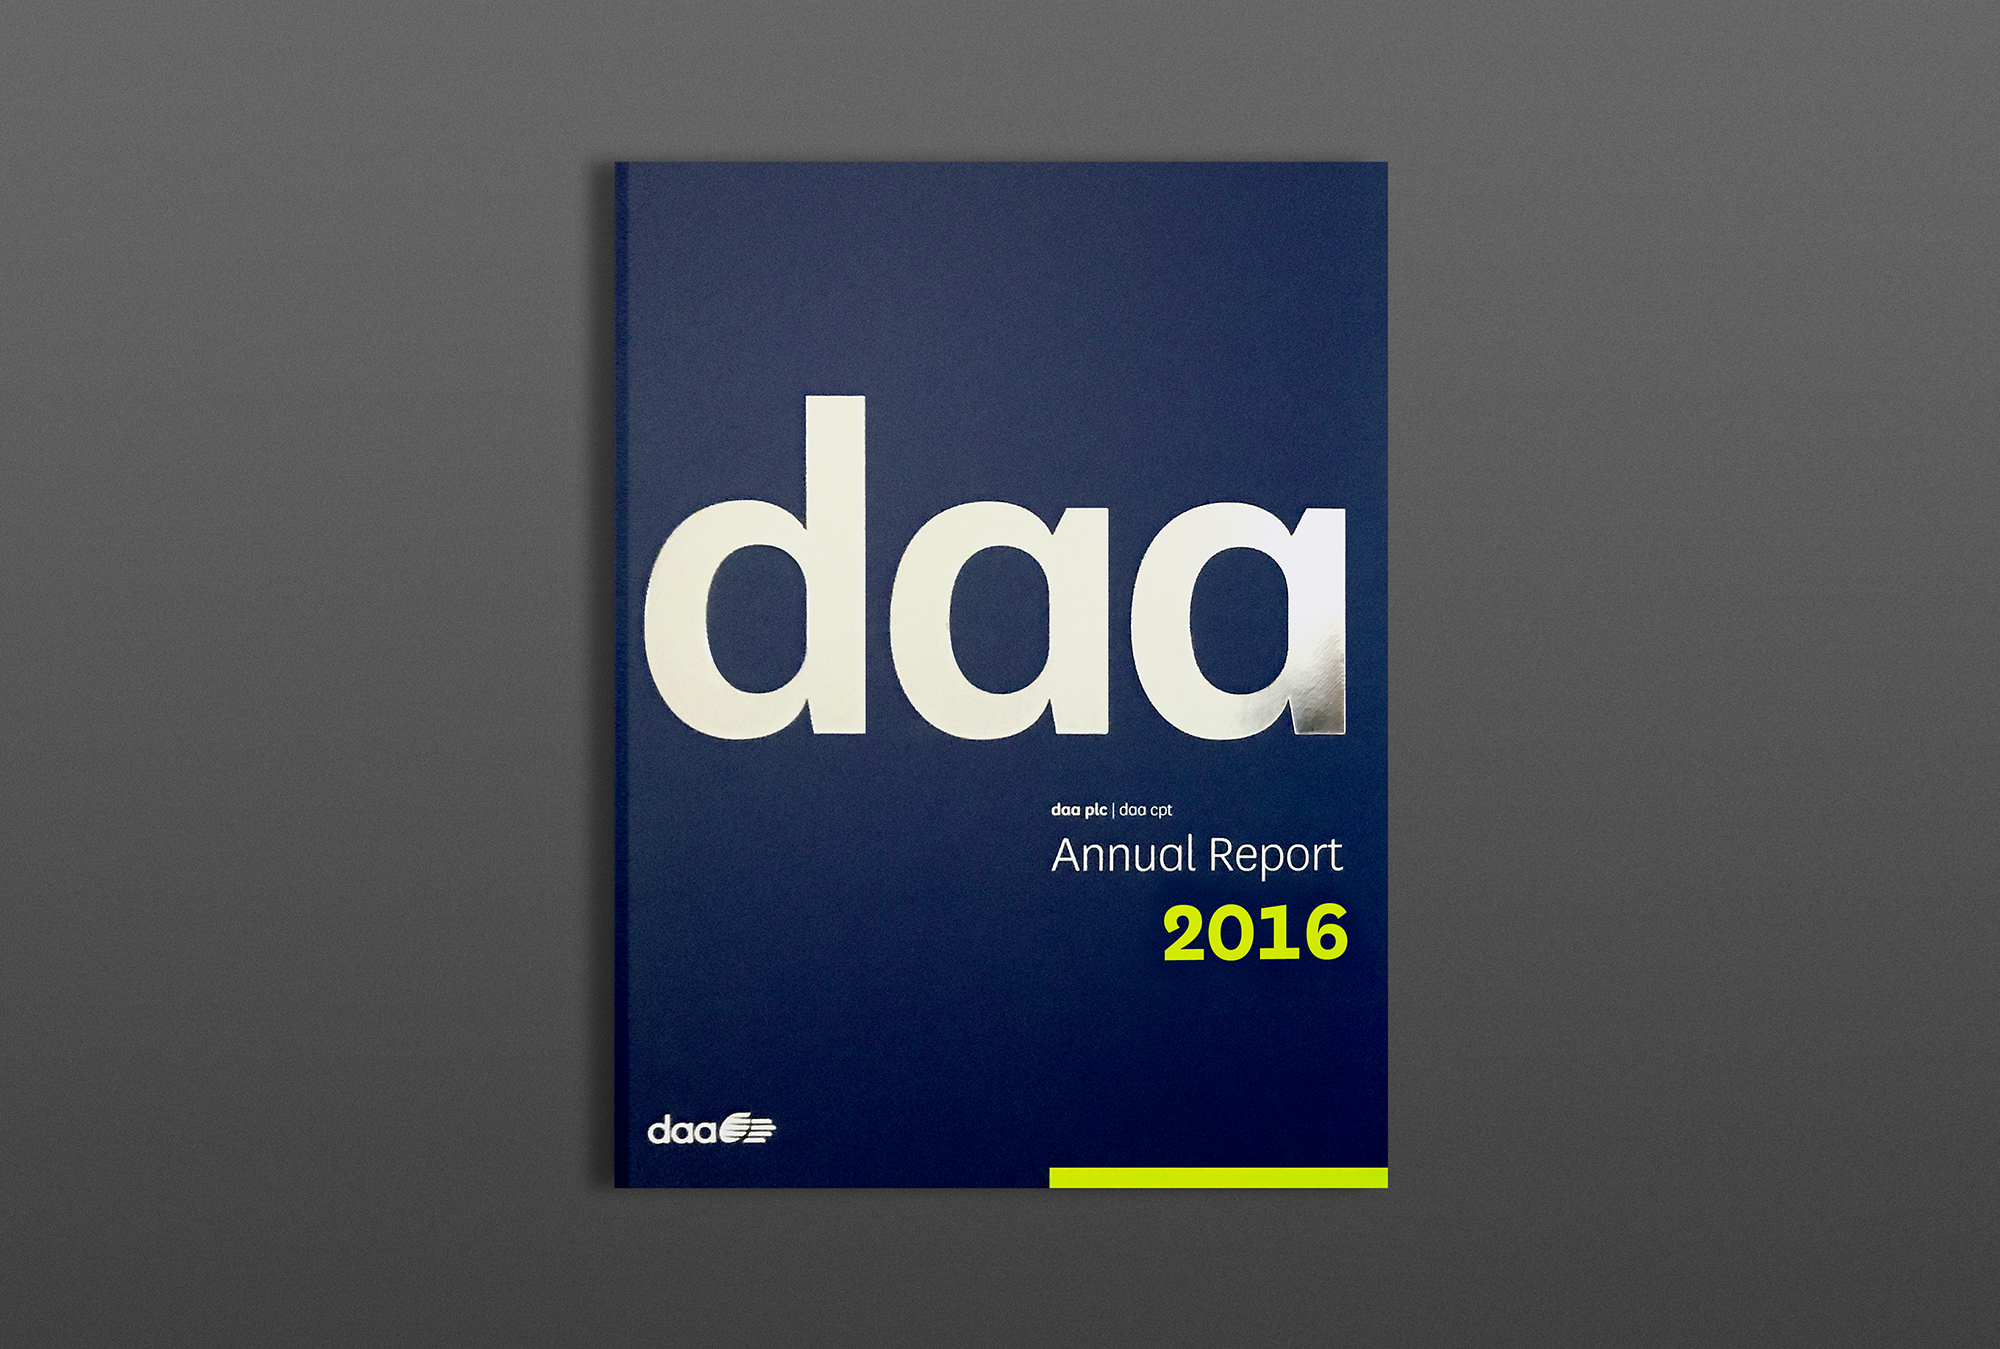 Cover image: DAA Financials & Annual Report, 2016